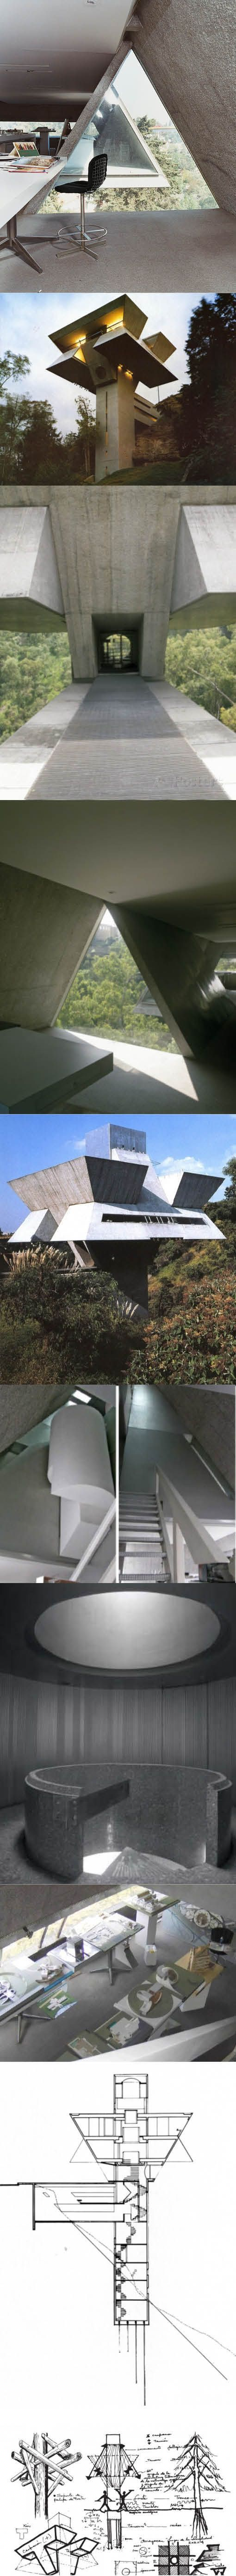 Find this Pin and more on Modern Architecture Buildings by KiMaEl65